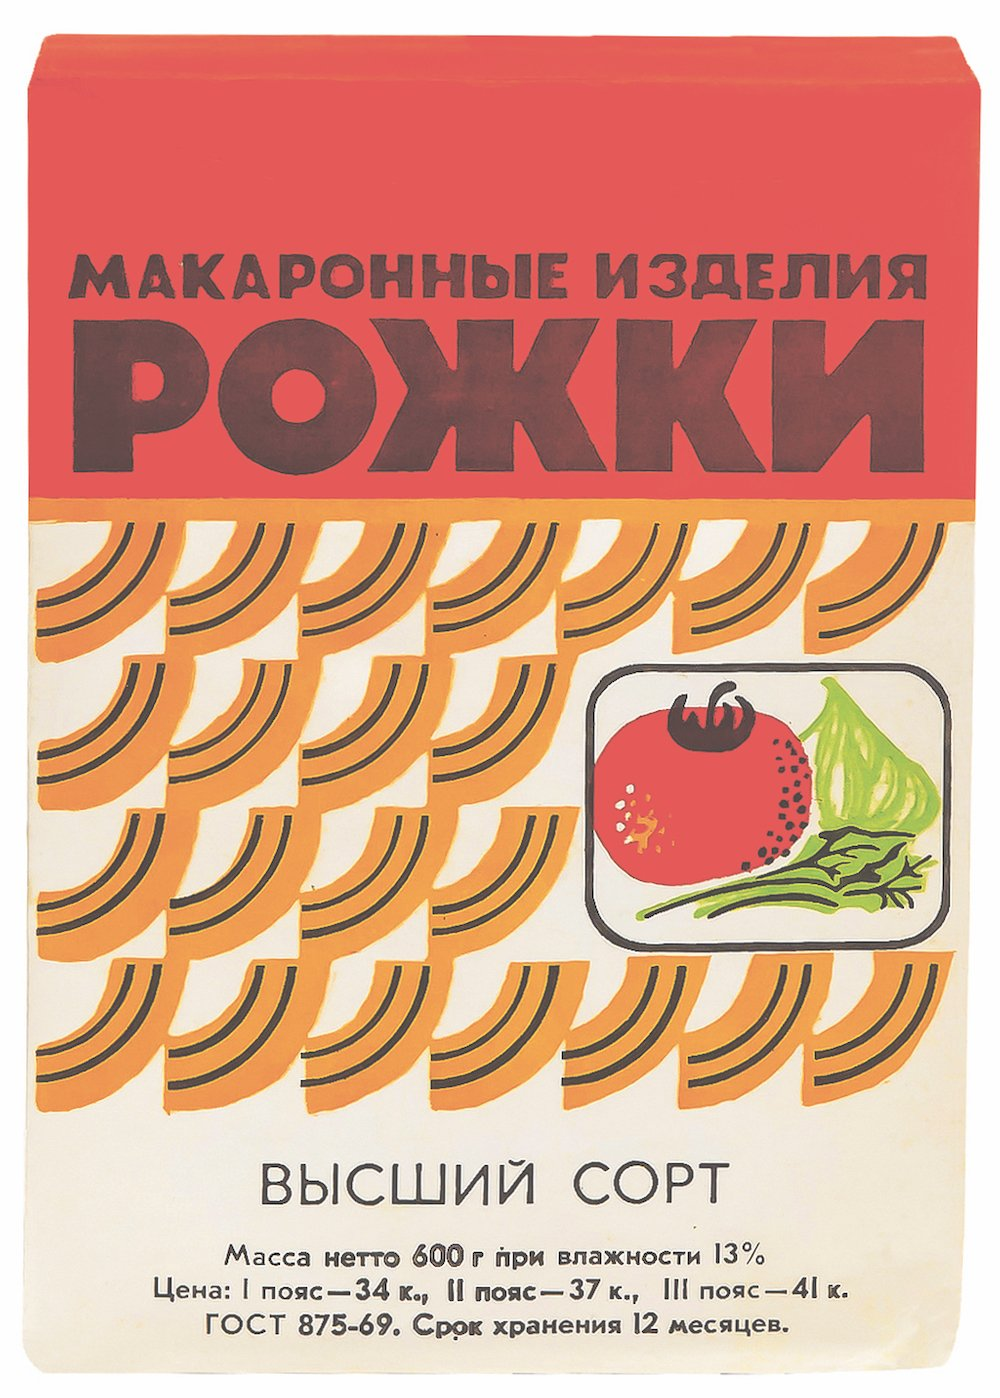 Rozhki pasta packaging, 1980s, manufactured by the Rostov Pasta Factory. Picture credit: courtesy and copyright © Moscow Design Museum